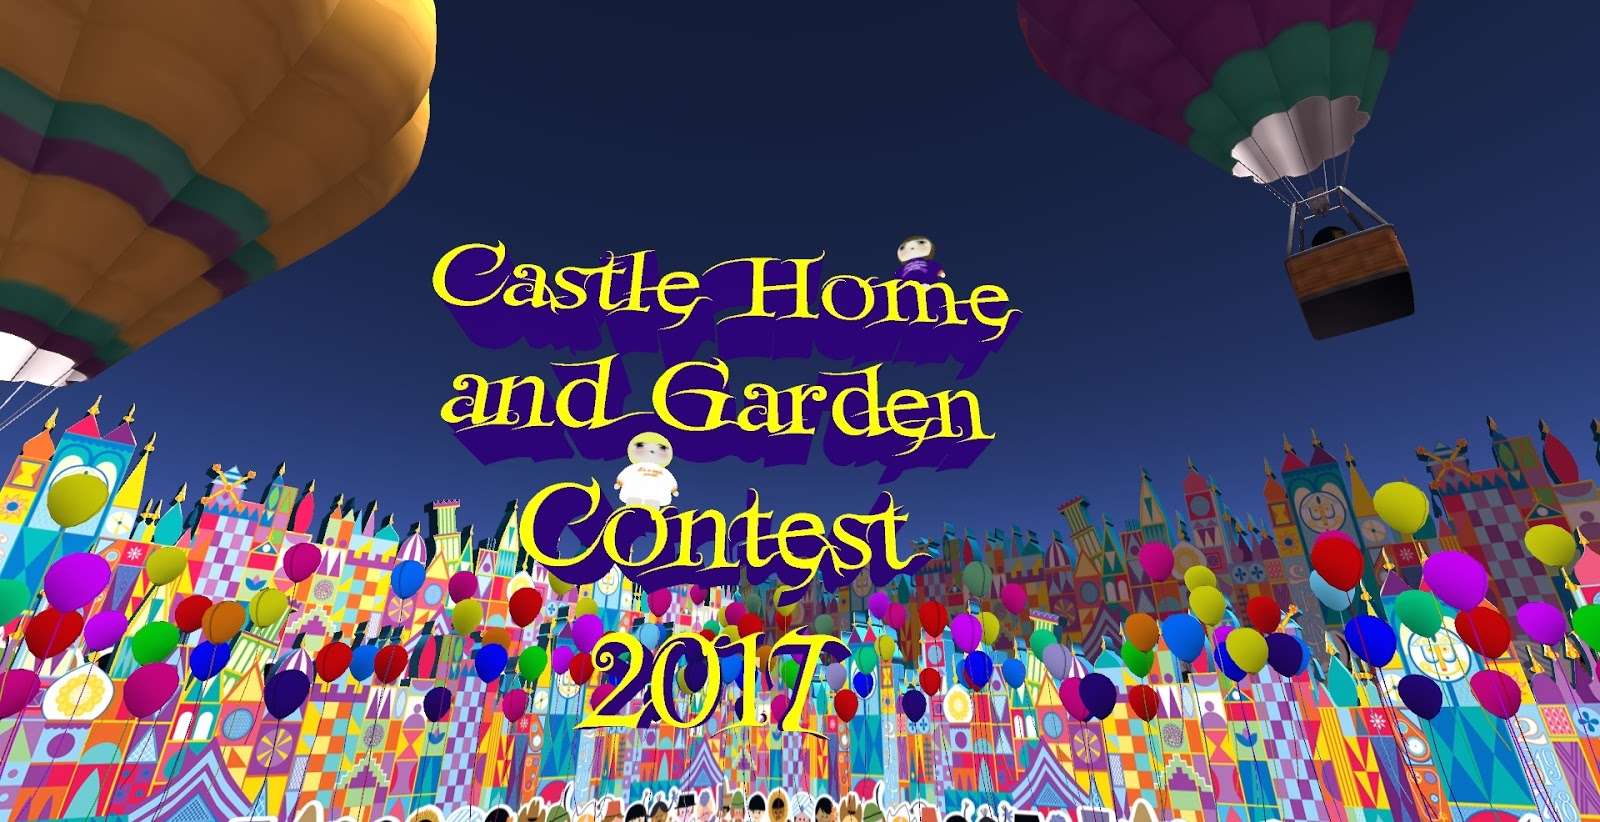 Second life newser castle and home and garden contest opens Home and garden contest